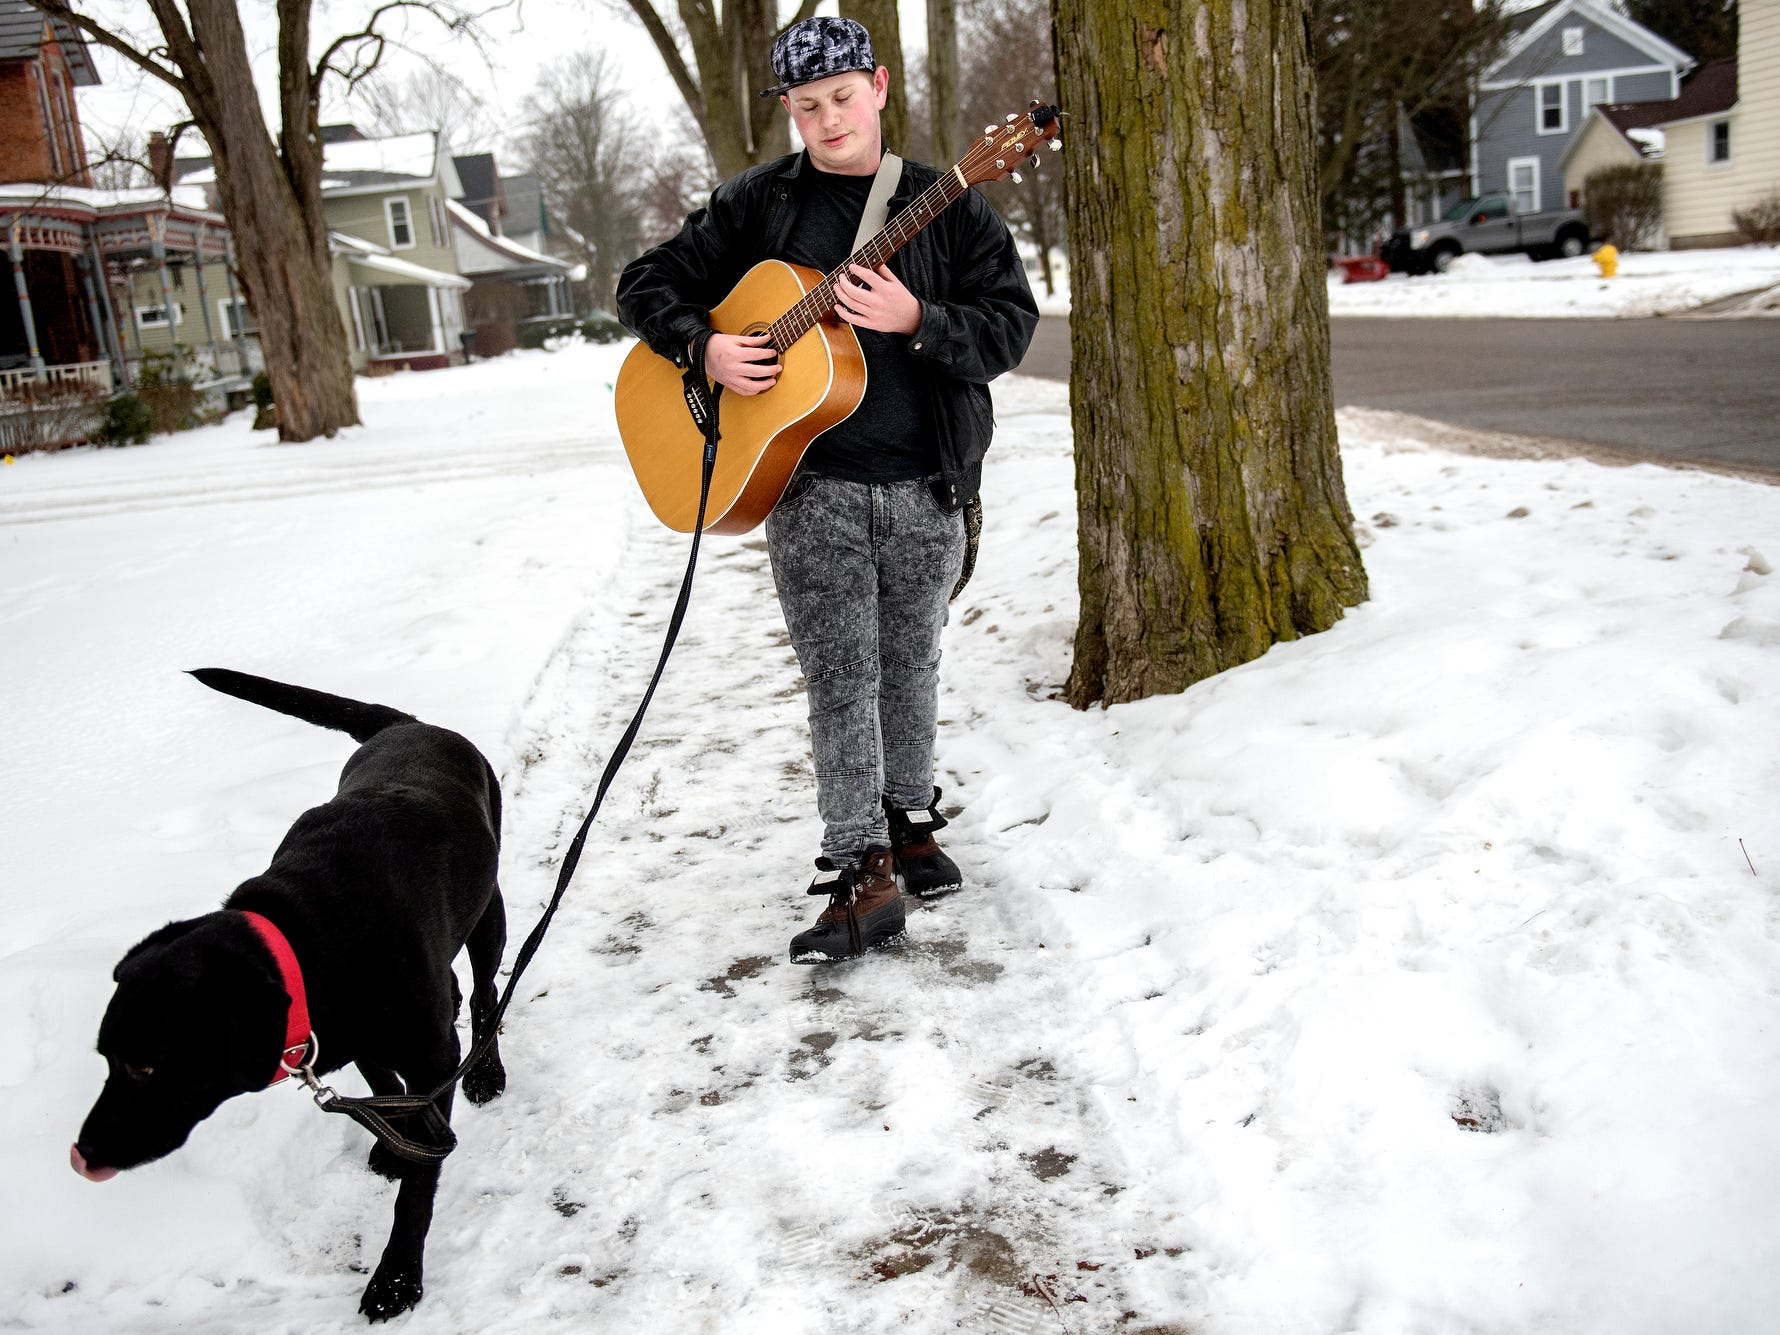 Photos: Charlotte's 'singing dog walker,' Garrett Blocker, fights stigma with music